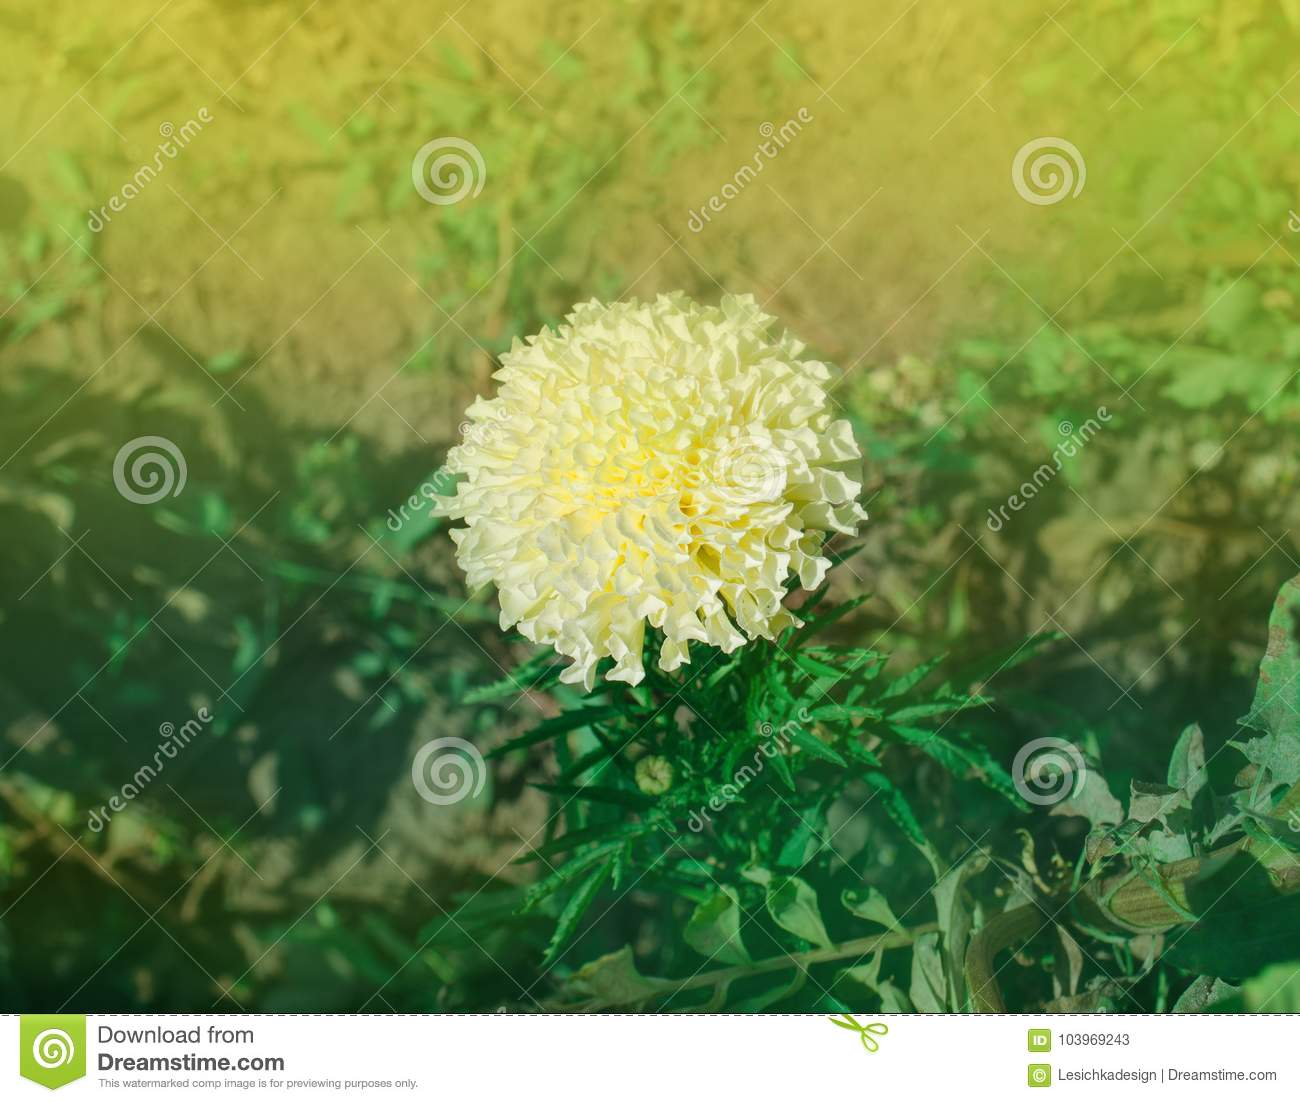 African White Marigold Or Tagetes Erecta Stock Image Image Of